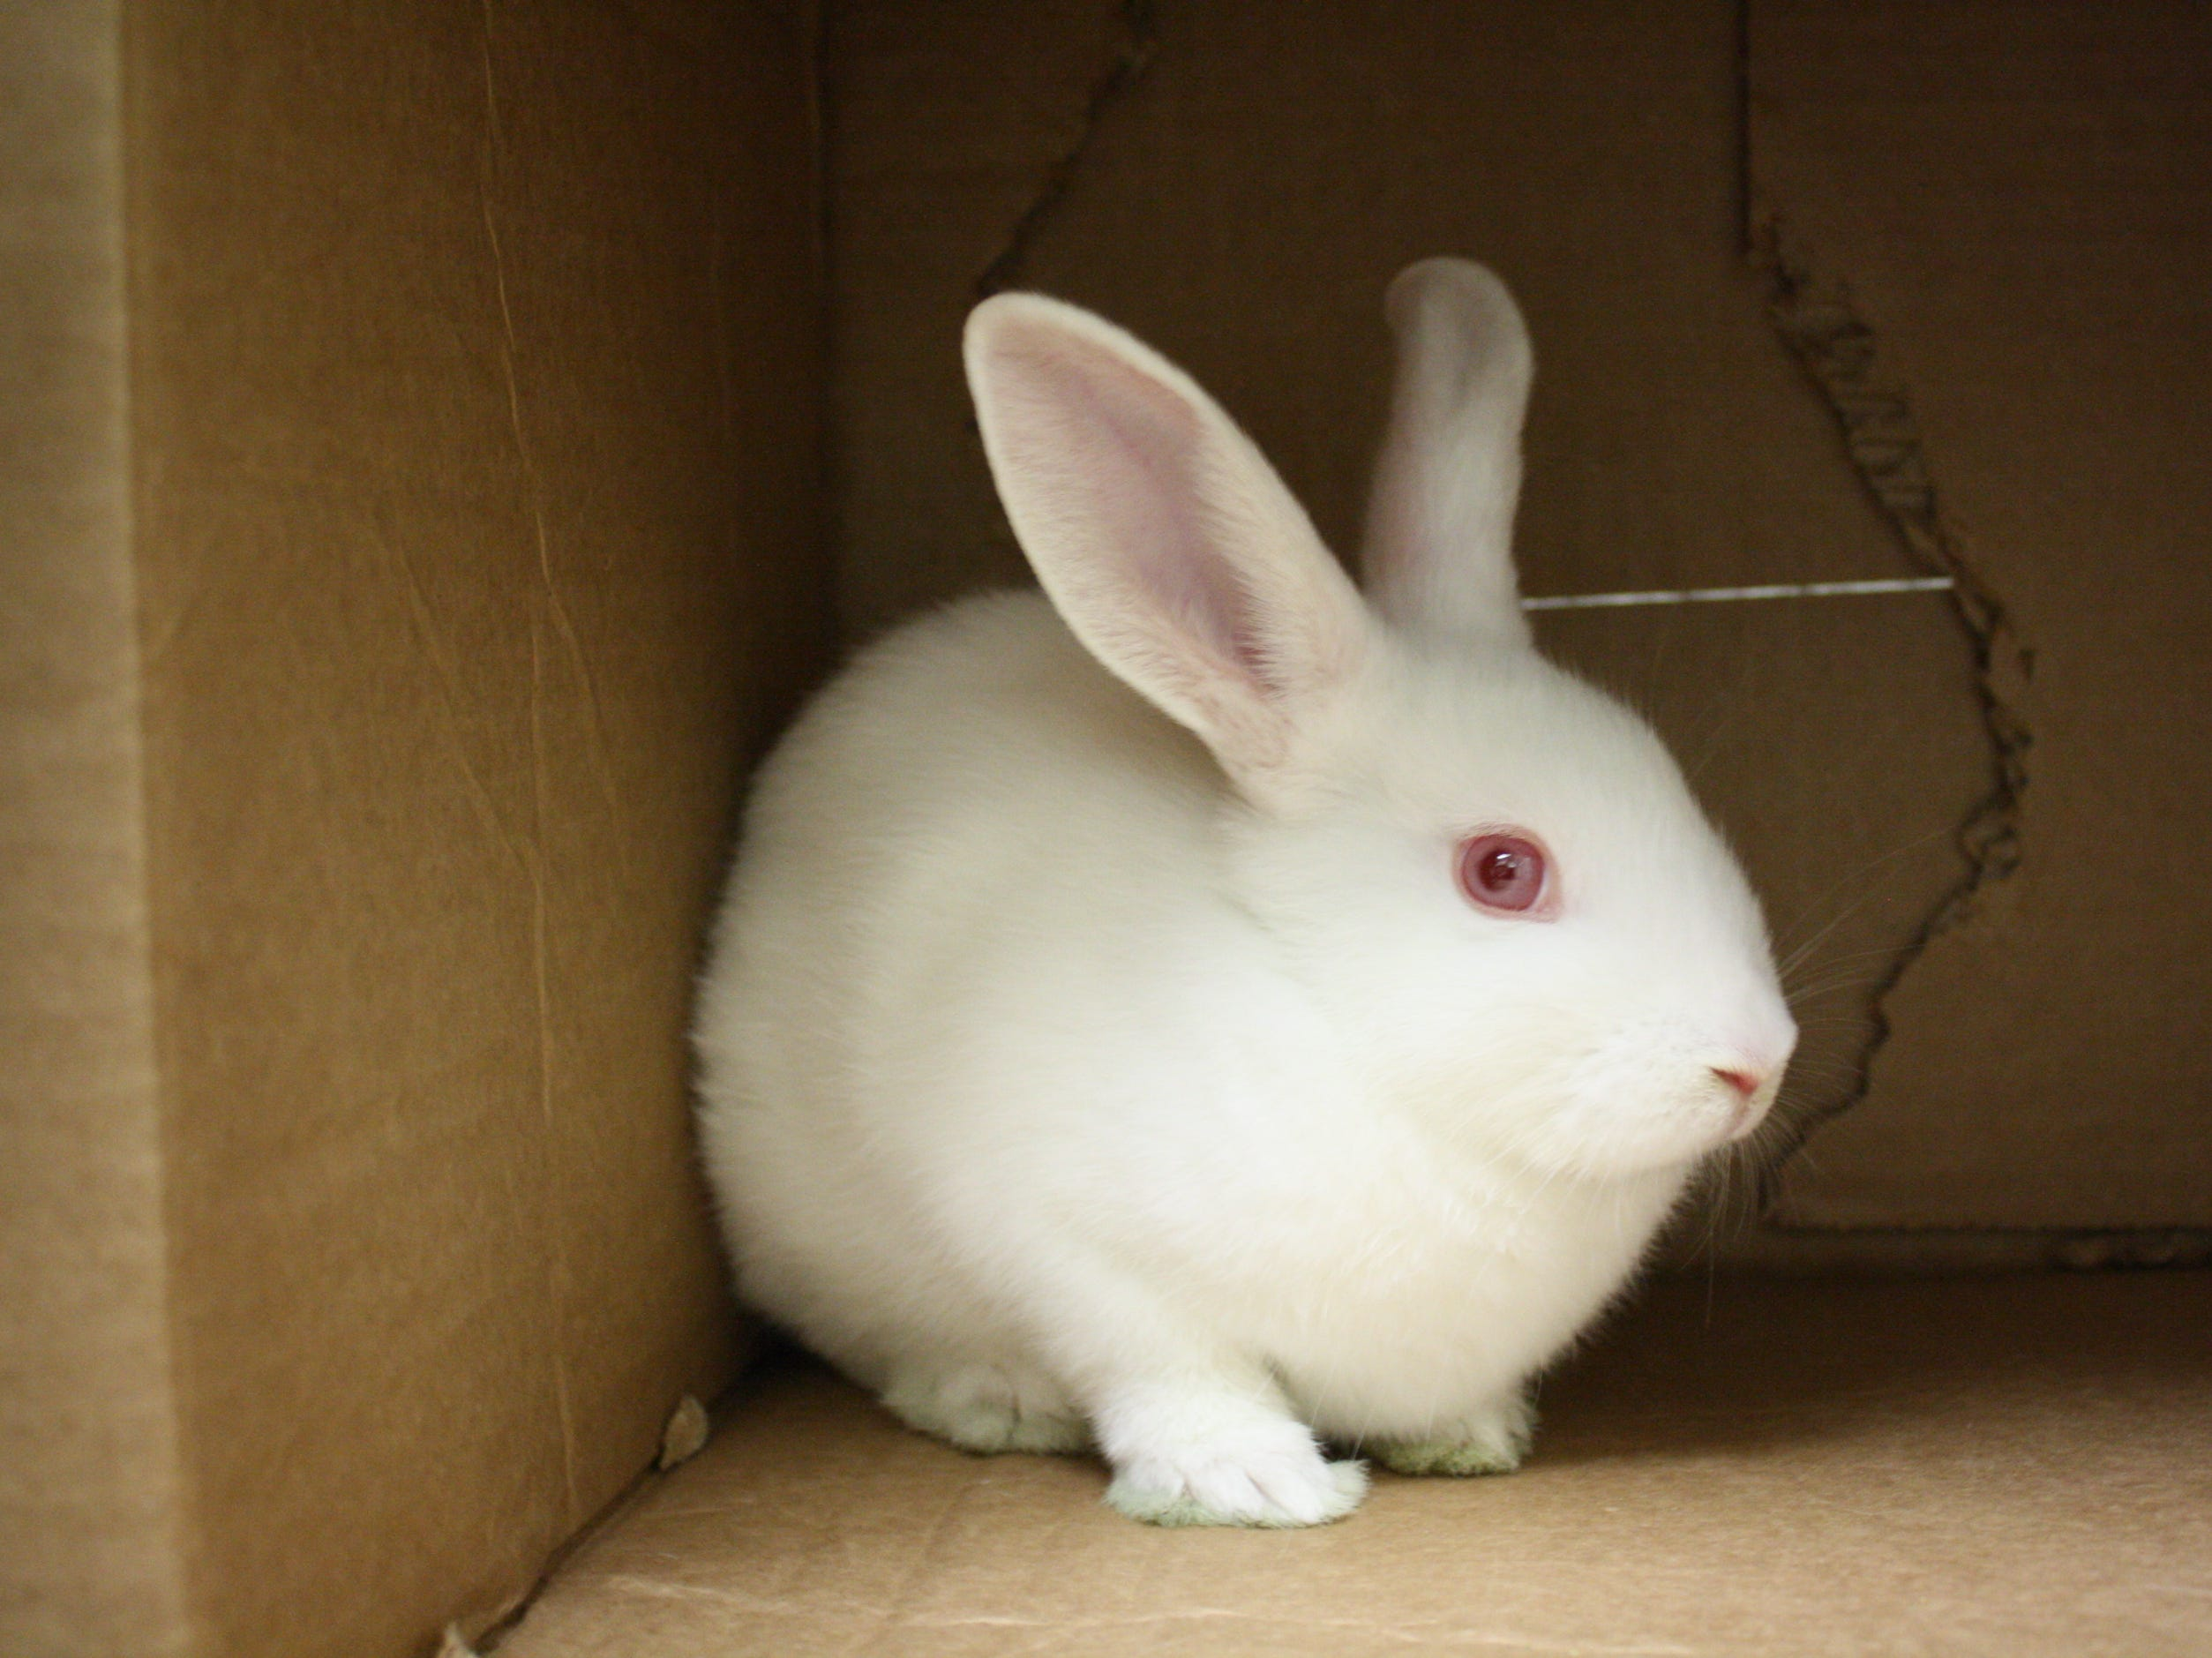 Cashmere, a 1-month-old American rabbit, wants to go home with her brother, Merino.